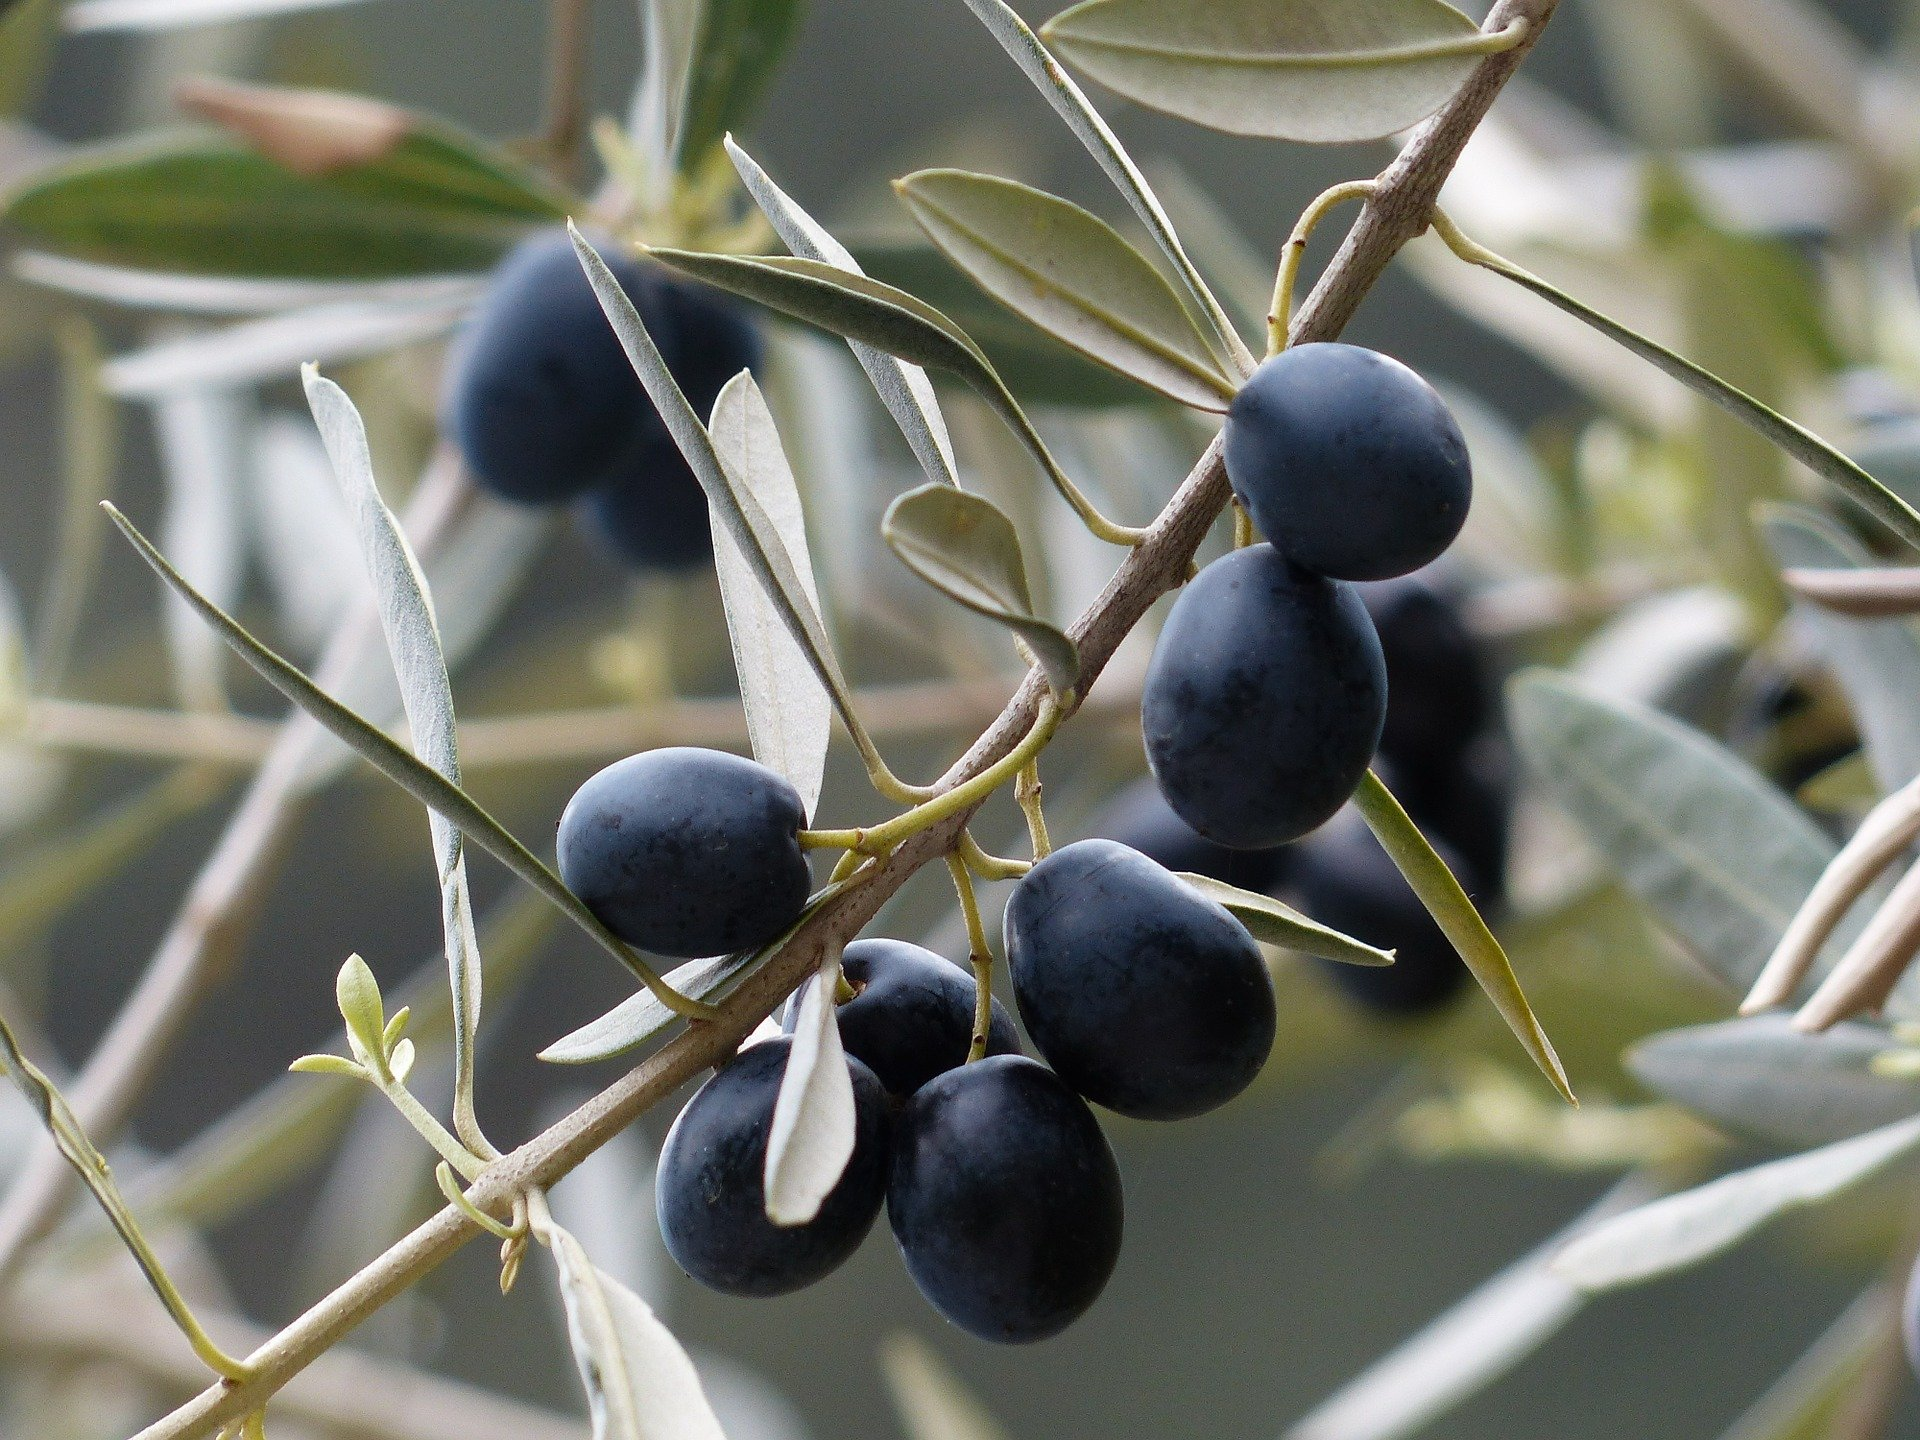 Improvement of 11.7 thousand hectares of olive groves with financial support of 250 billion Rials ($ 5.9 million) in 2020